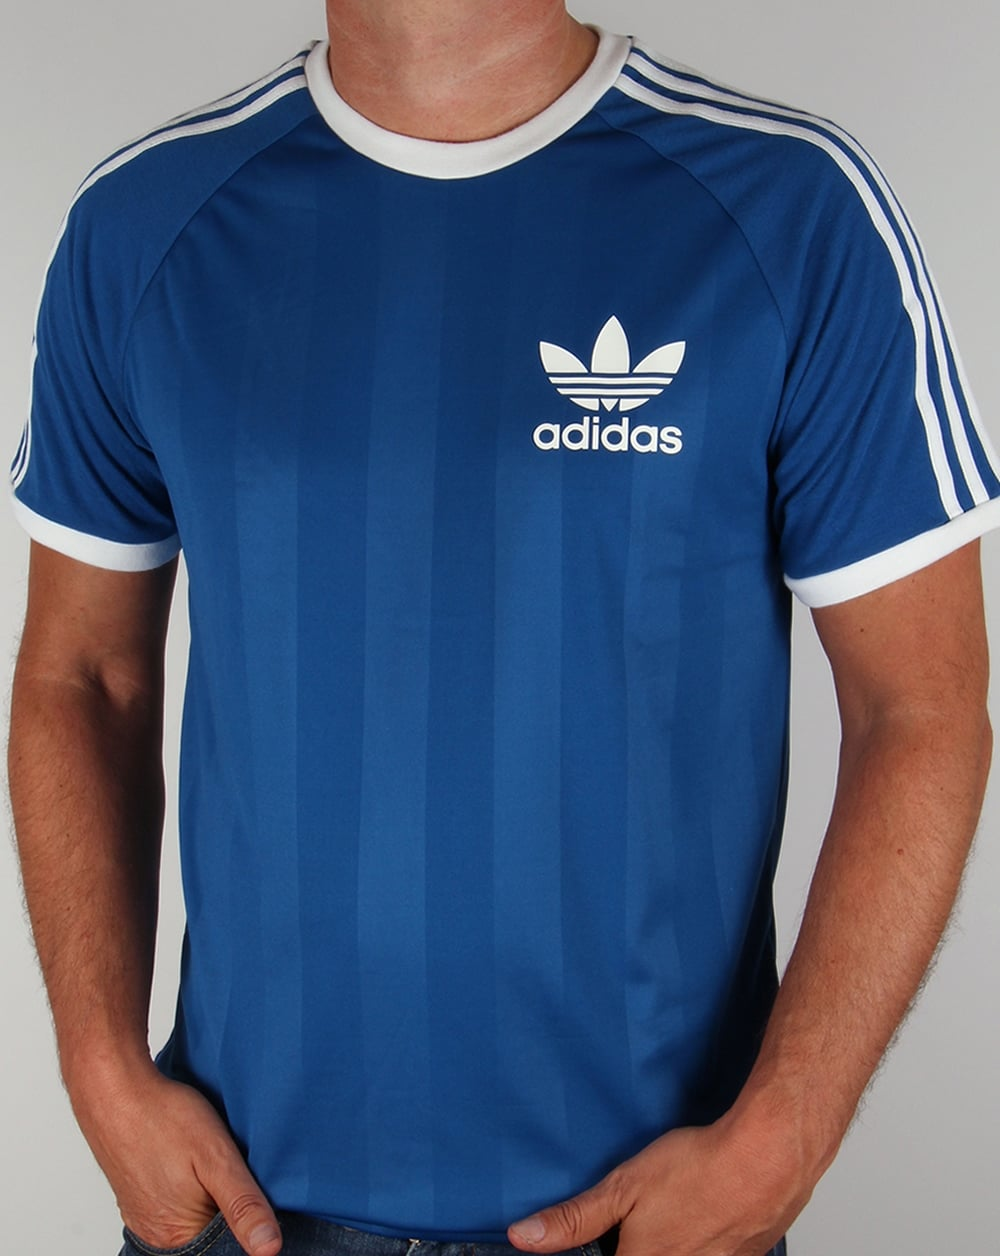 Adida old skool t shirt royal blue 3 stripe football for Adidas lotus t shirt